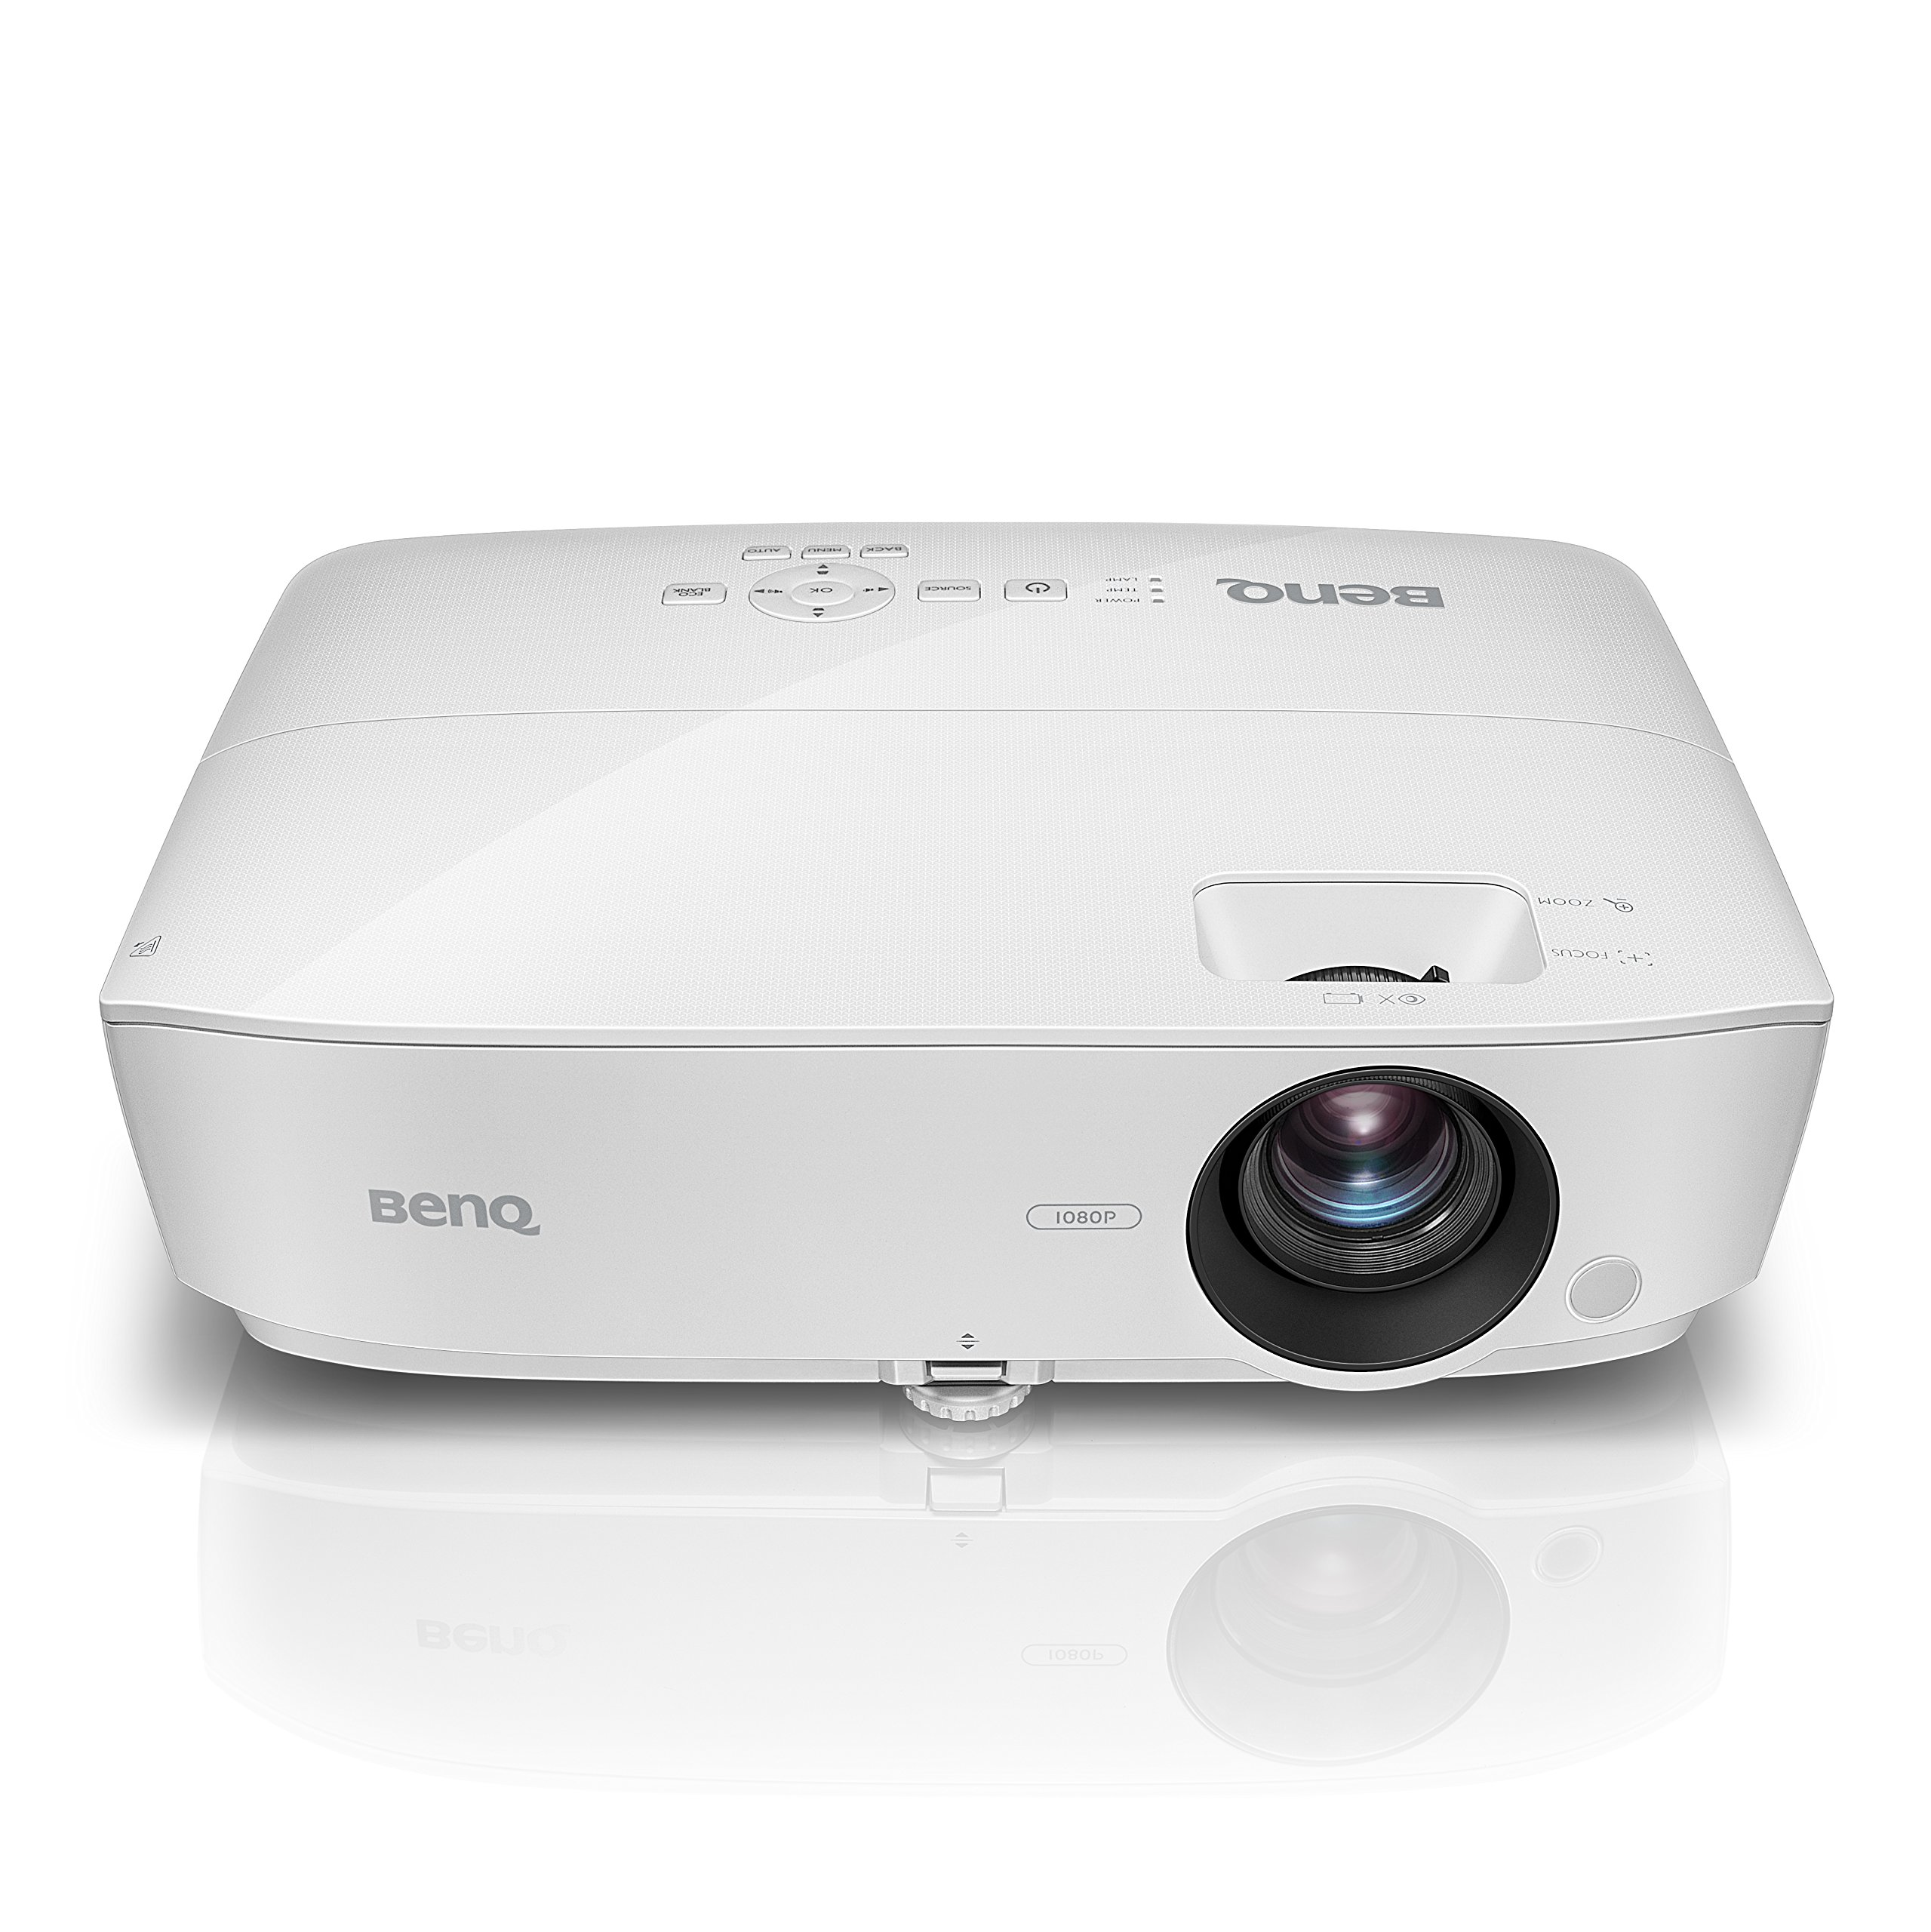 BenQ MH535A 1080p 3600 Lumens HDMI Vibrant DLP Color Projector for Home and Office by BenQ